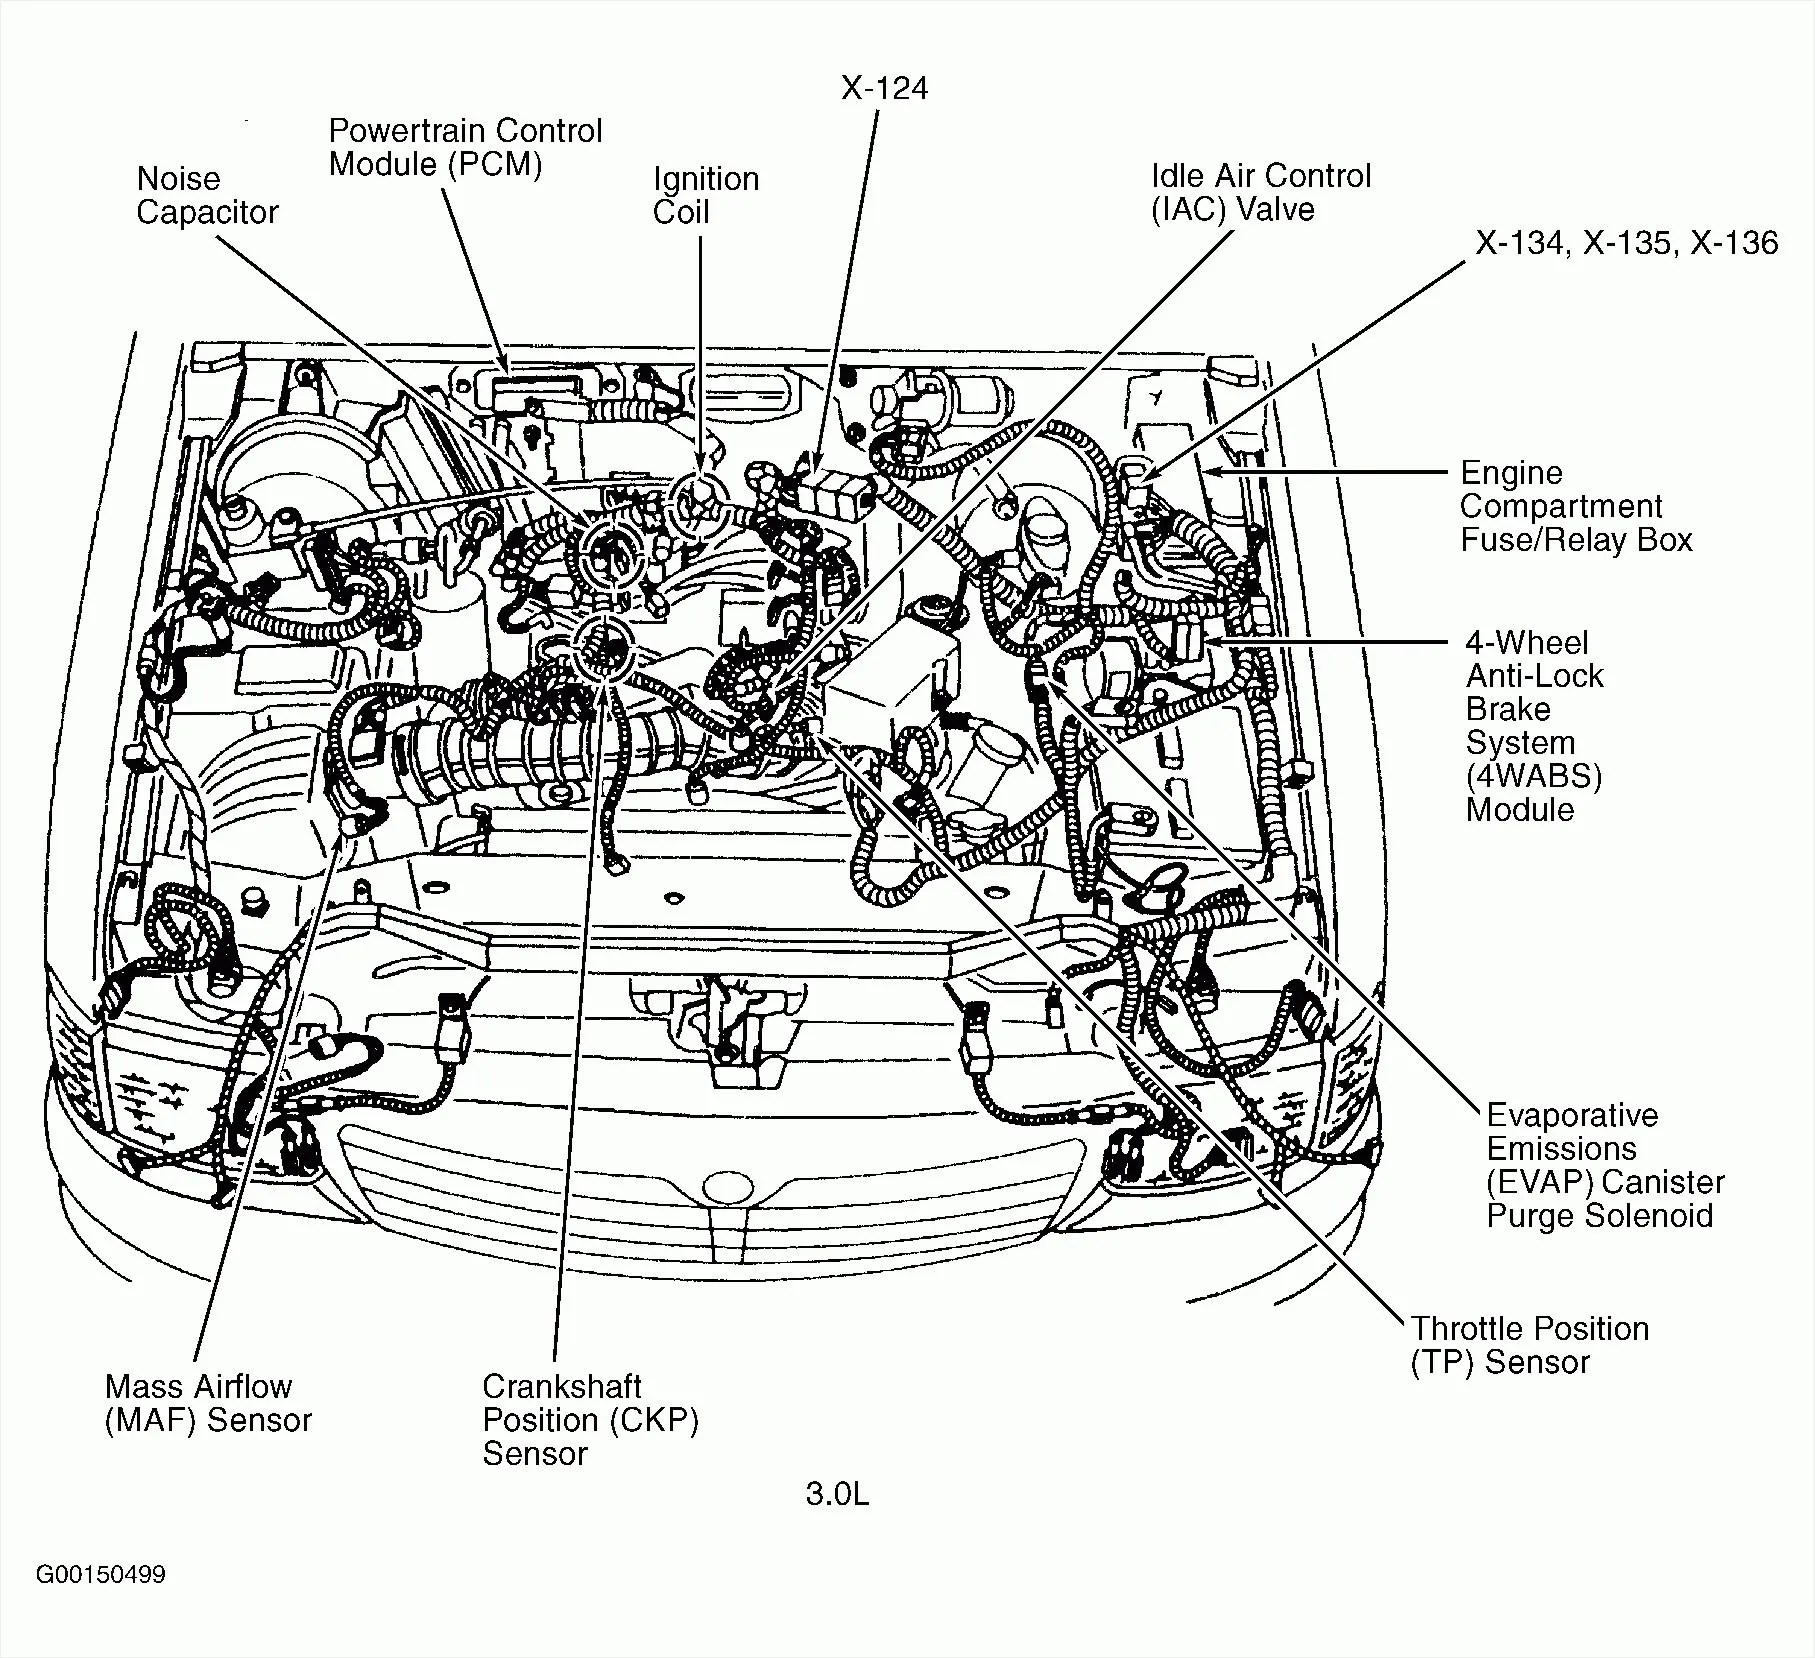 hight resolution of 96 accord v6 engine diagram wiring diagram img 2002 honda accord v6 engine diagram furthermore sea